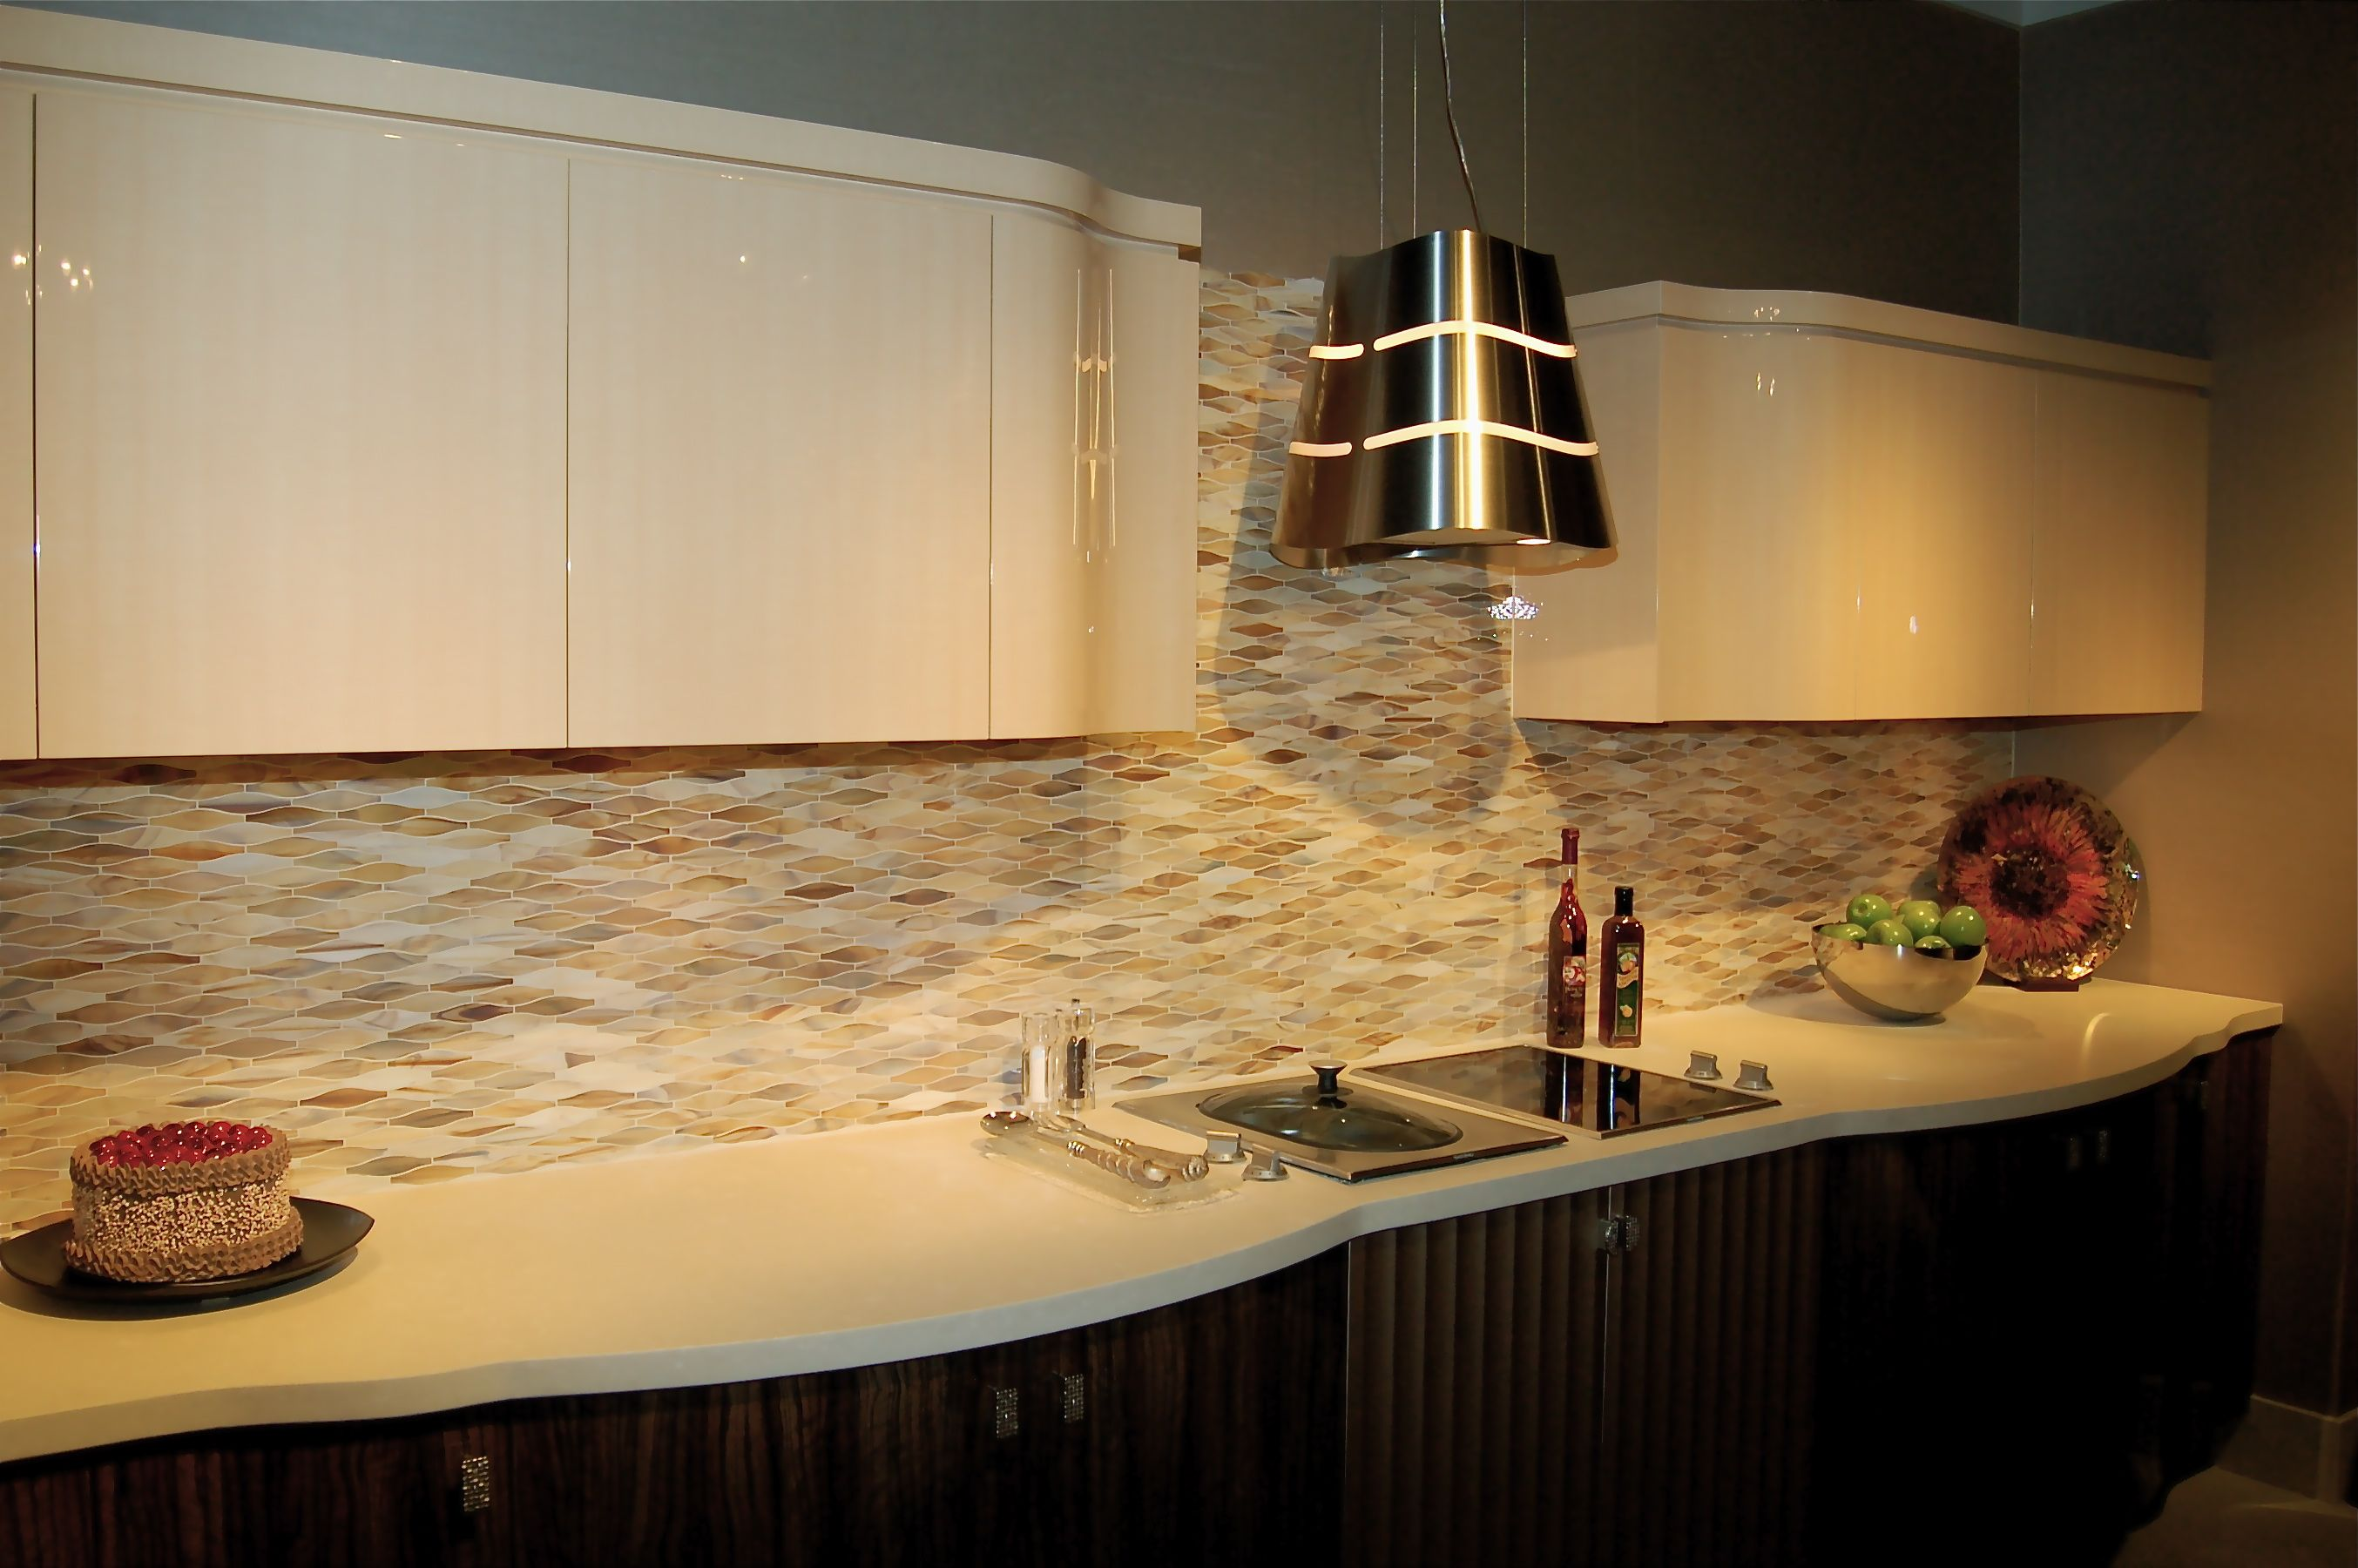 Tiling For Kitchen Walls Glass Tile Backsplash Photo Gallery The New Treble Line Of Jazz